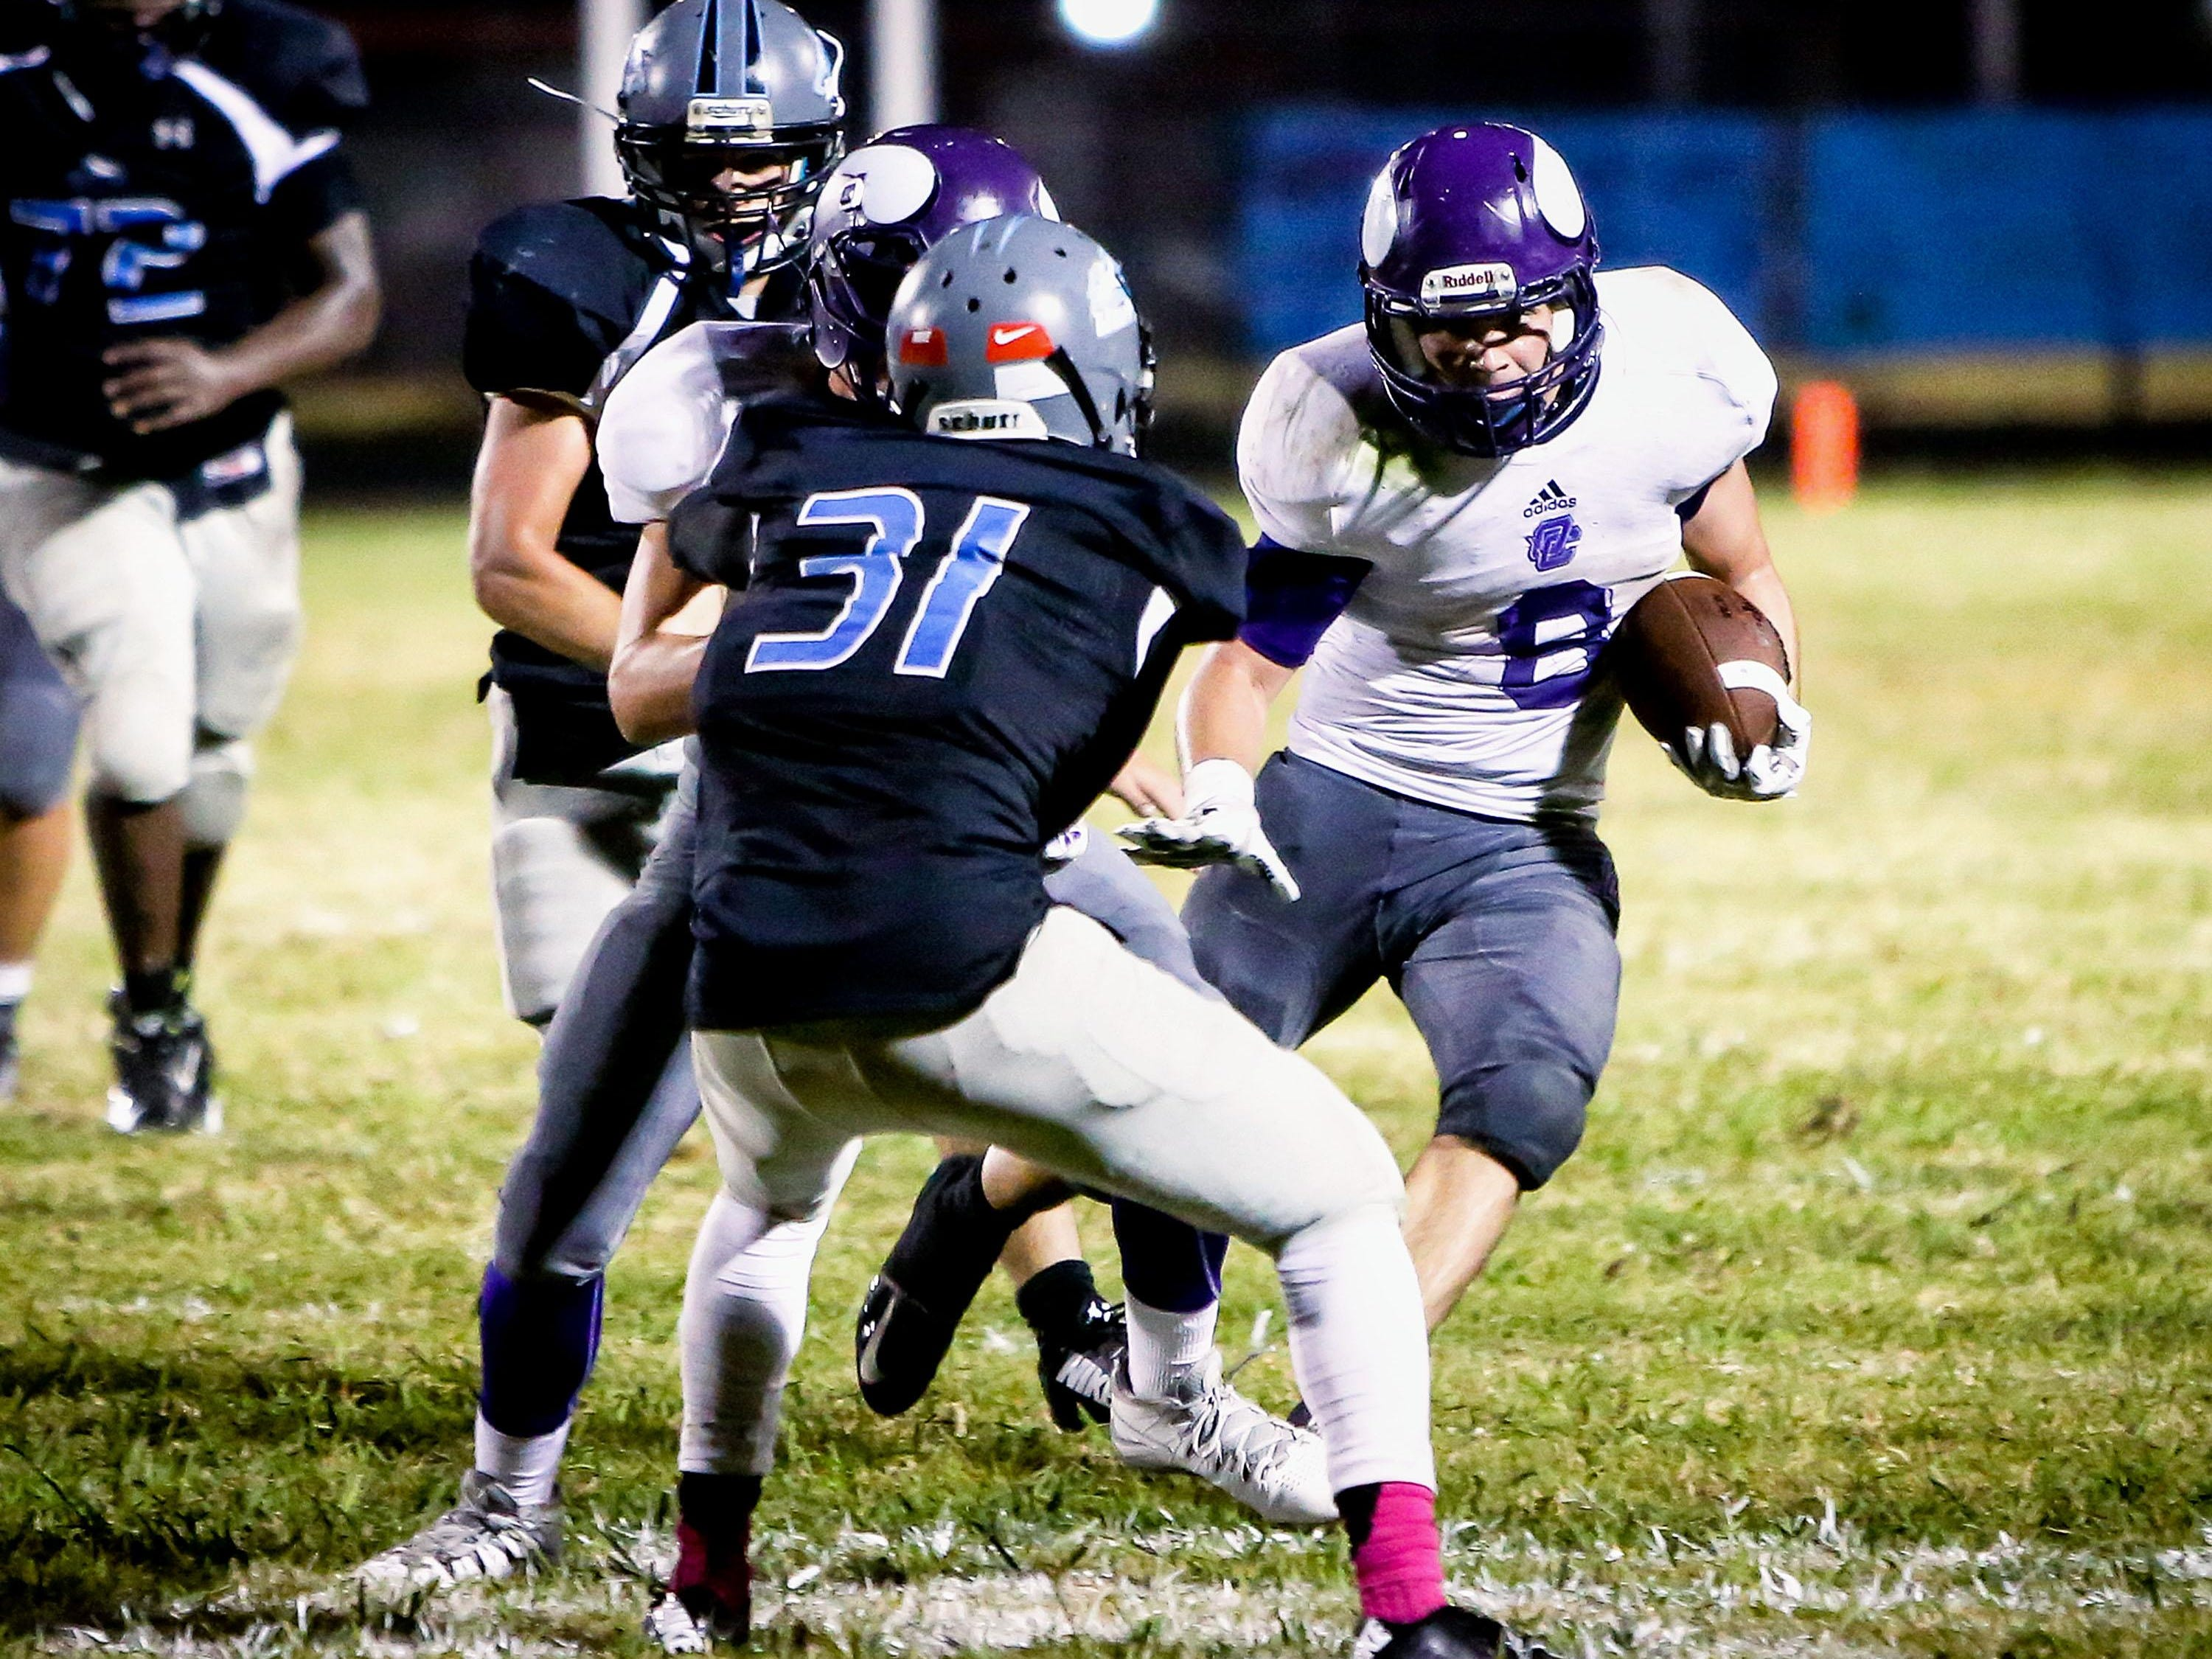 Opelousas Catholic's Aaron Miller runs for yardage during the Vikings' win over West St. Mary.